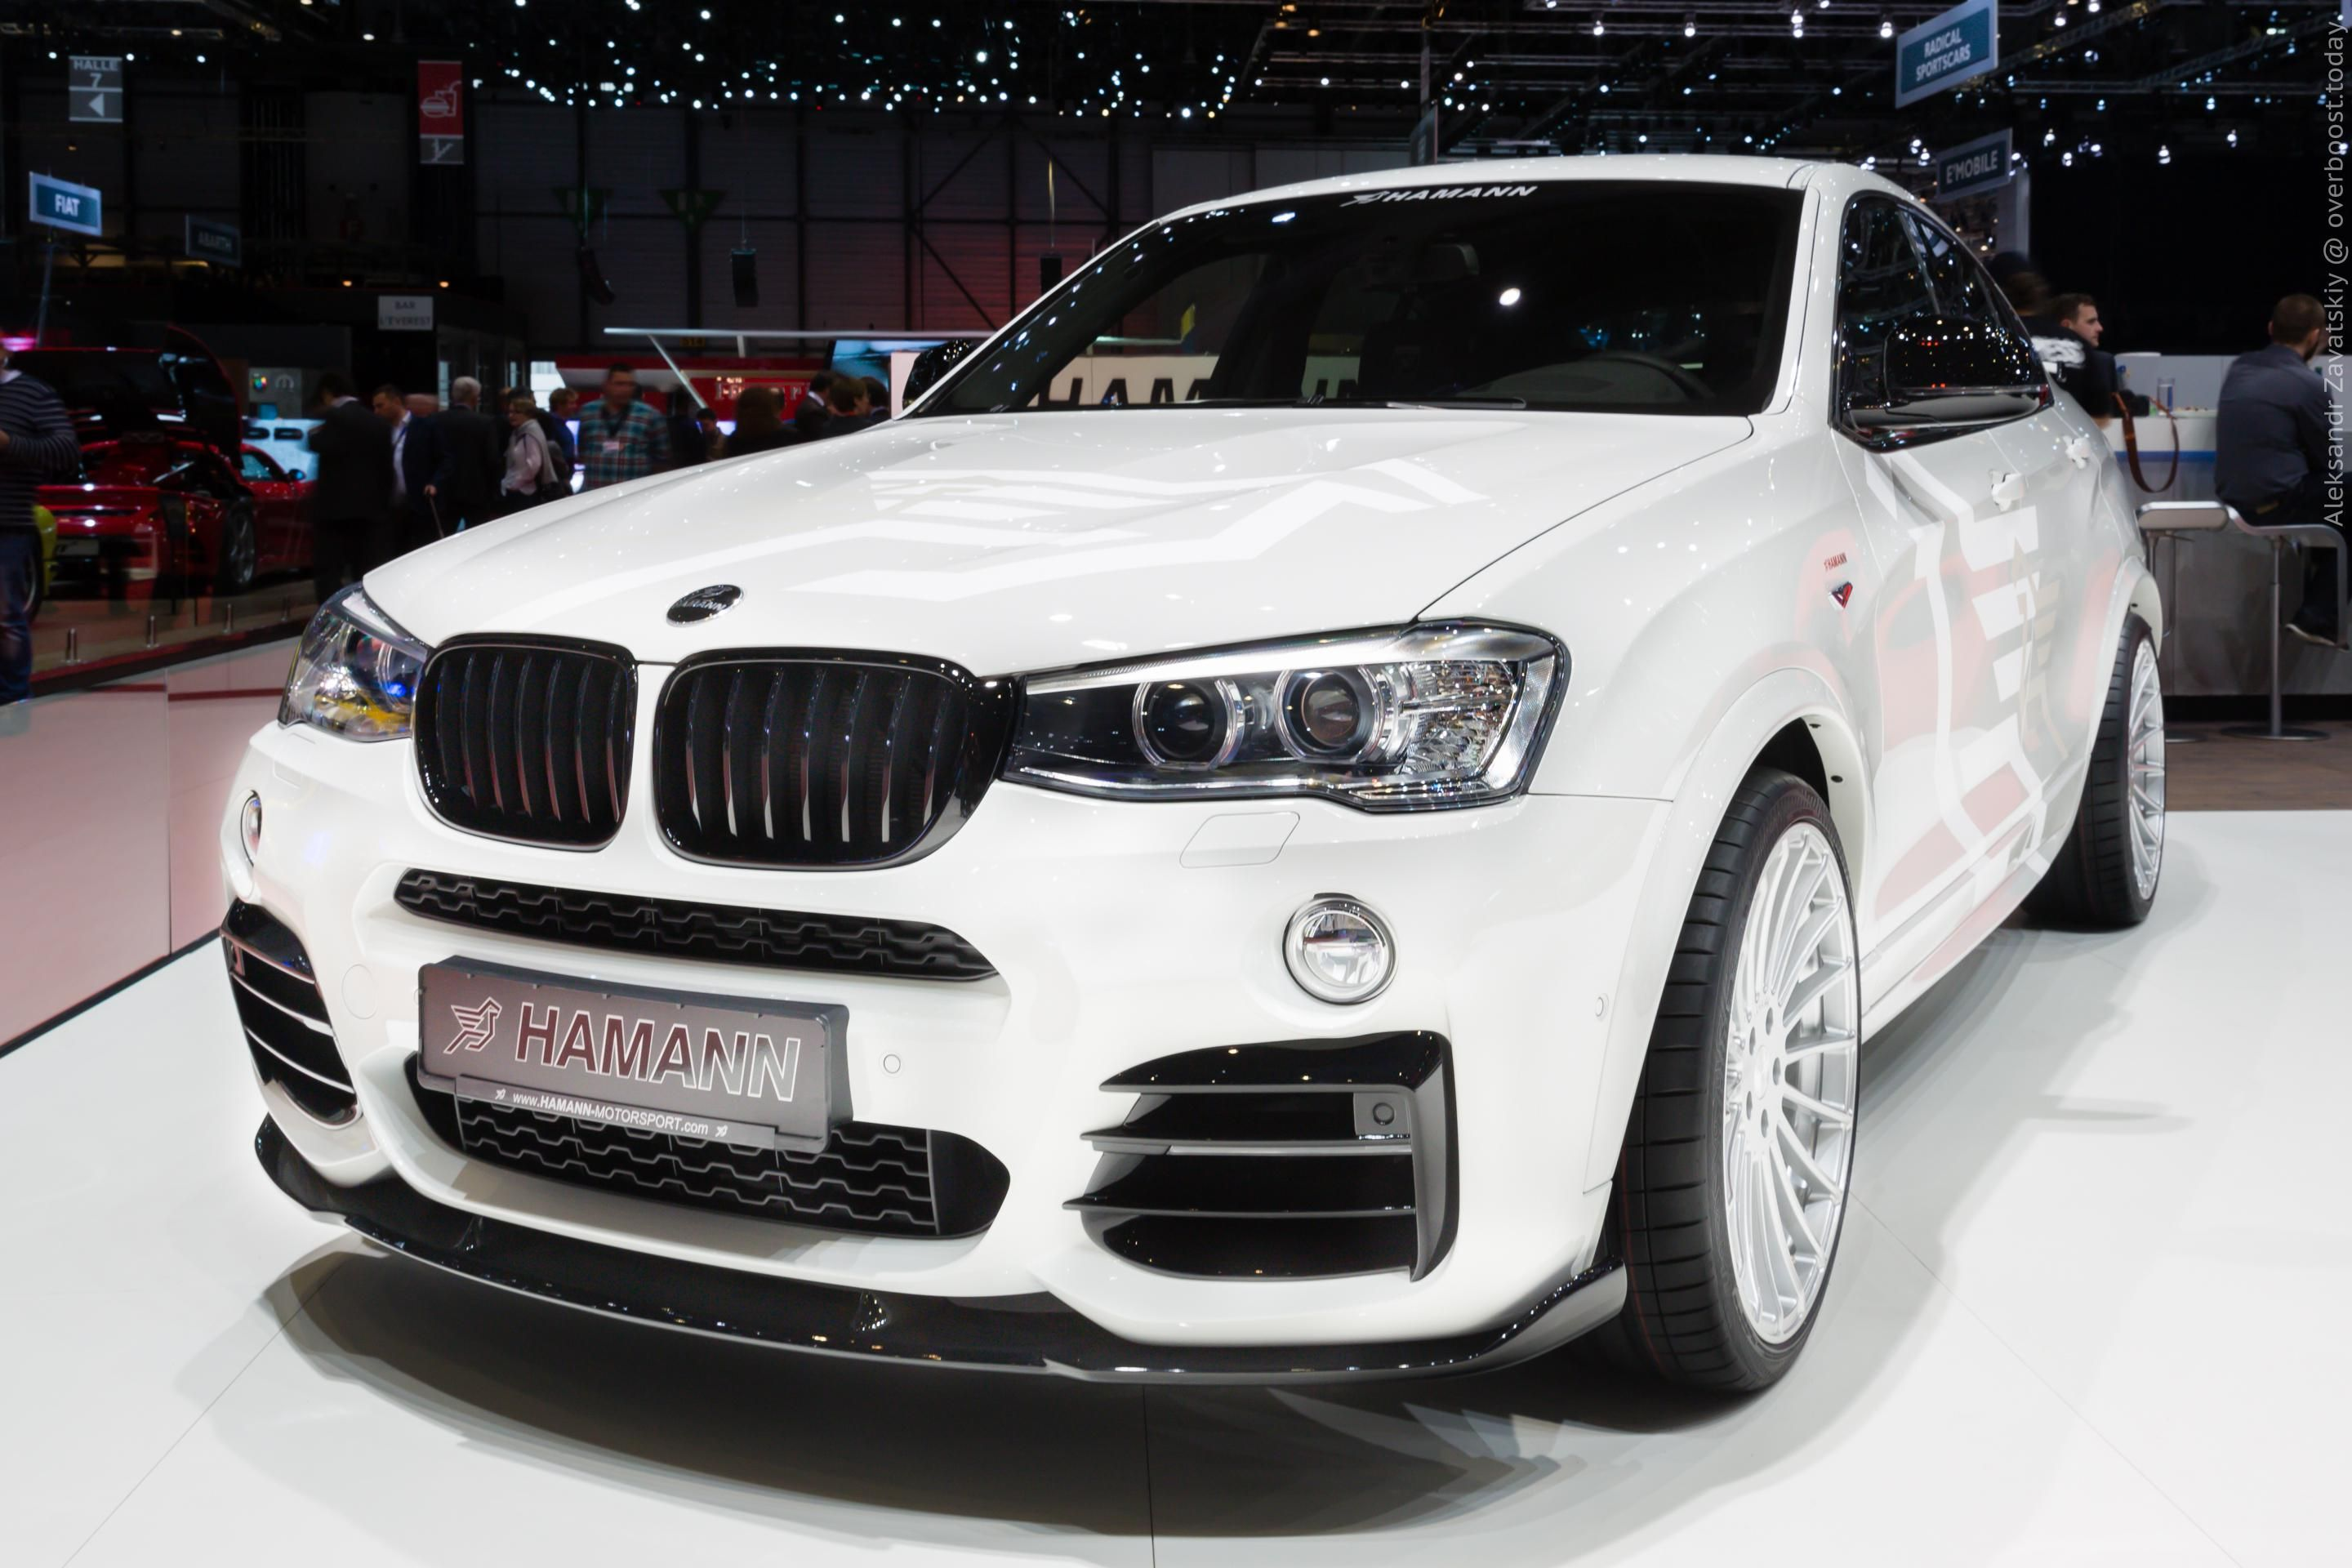 2016 bmw x4 hamann 2016my bmw hamann bmw x4. Black Bedroom Furniture Sets. Home Design Ideas